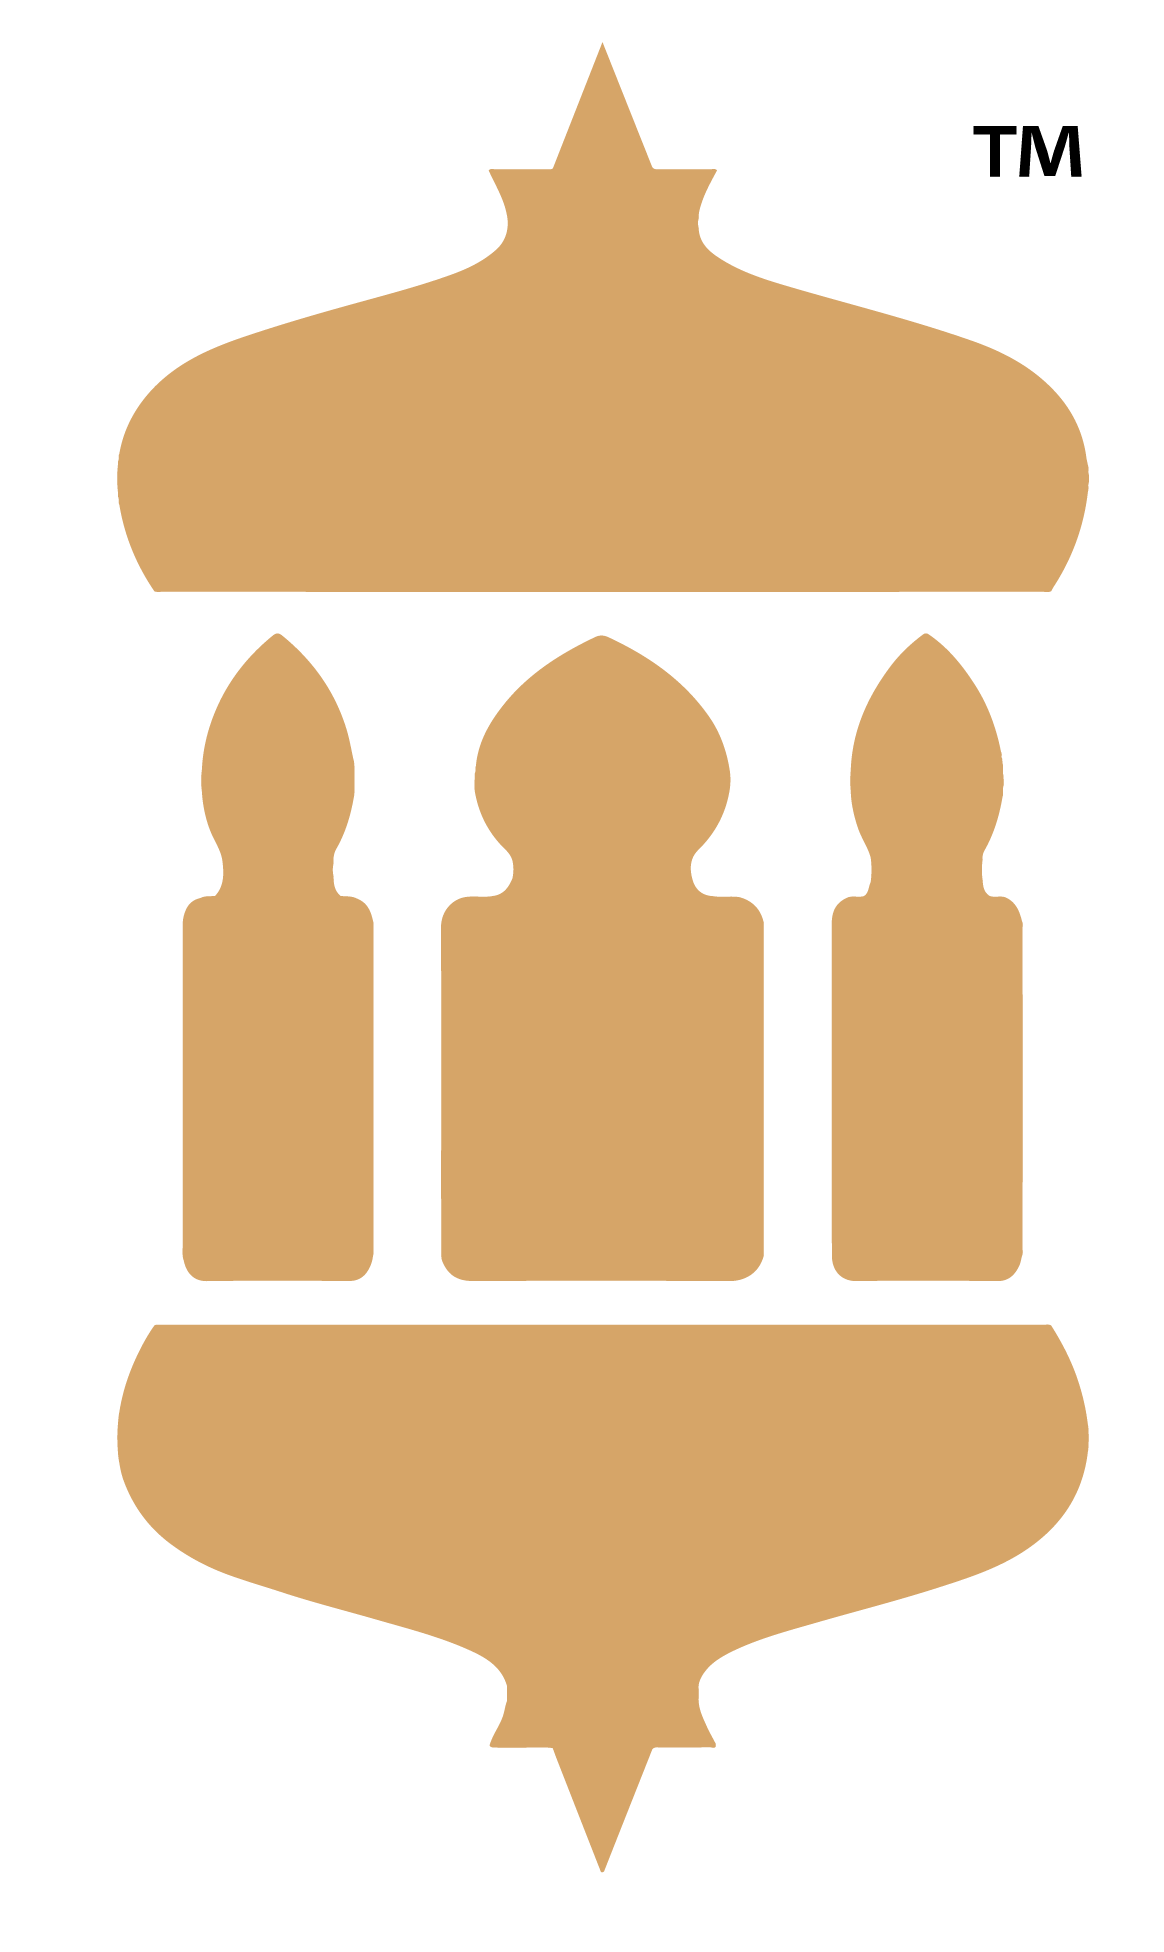 DAYS-OF-EID-LOGO-TRADEMARK-03.png